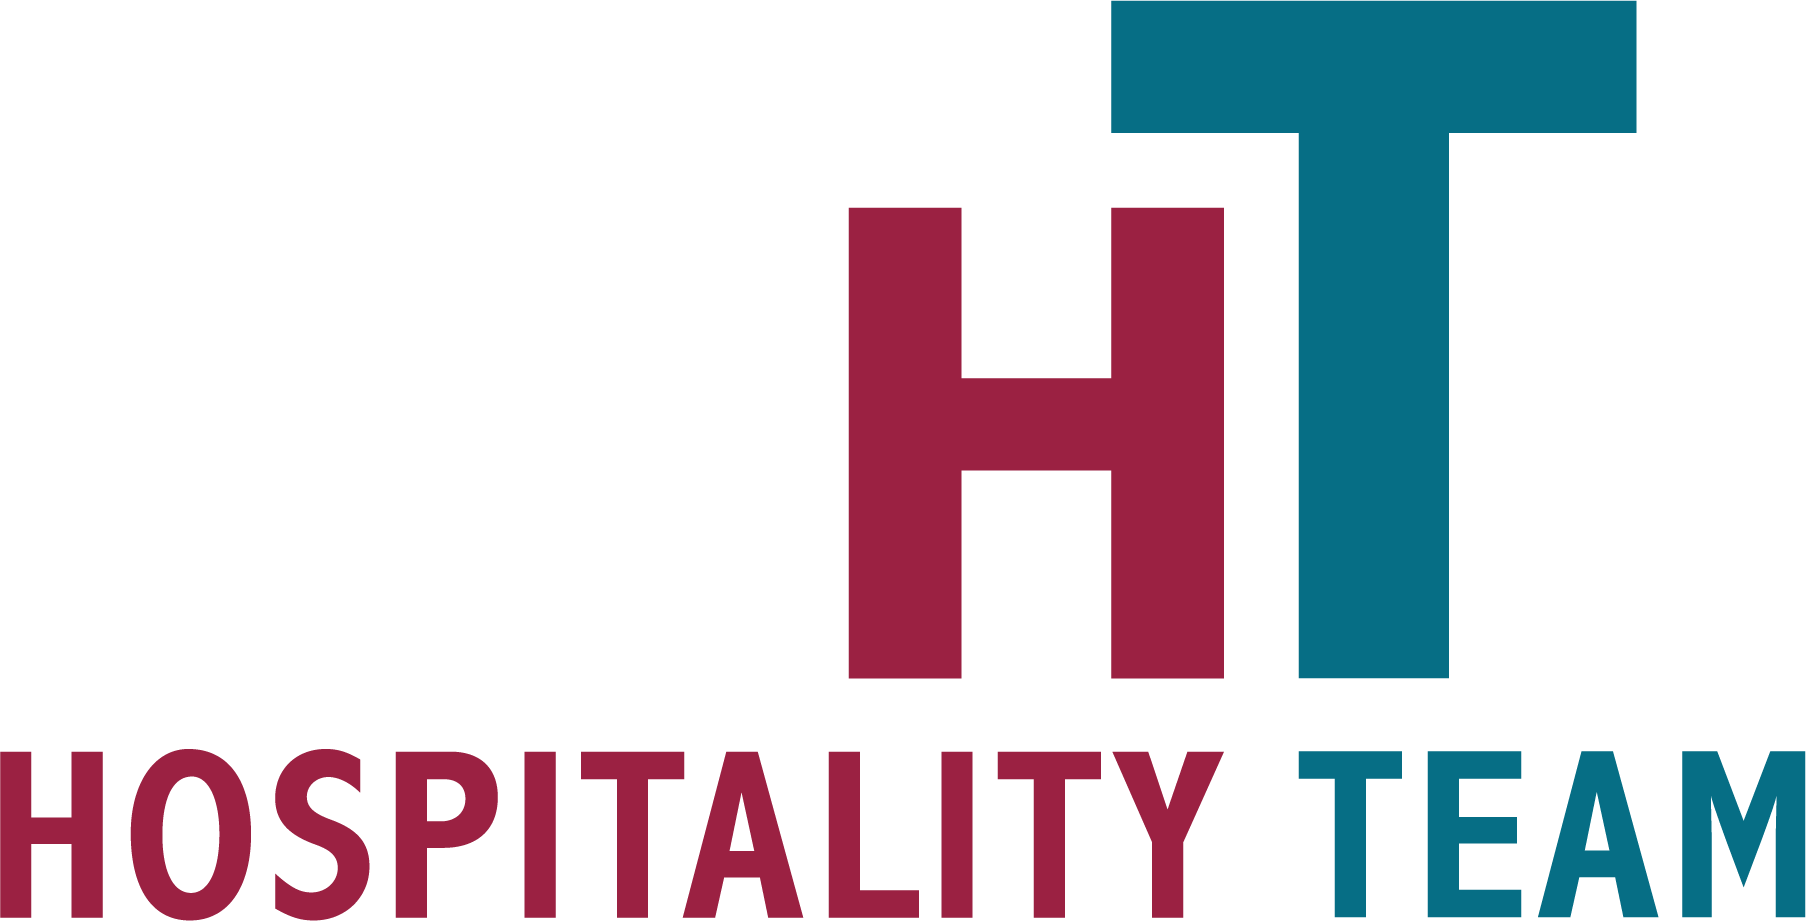 insights, Scopri Instagram Insights e migliora la tua strategia di comunicazione, Hospitality Team, Hospitality Team